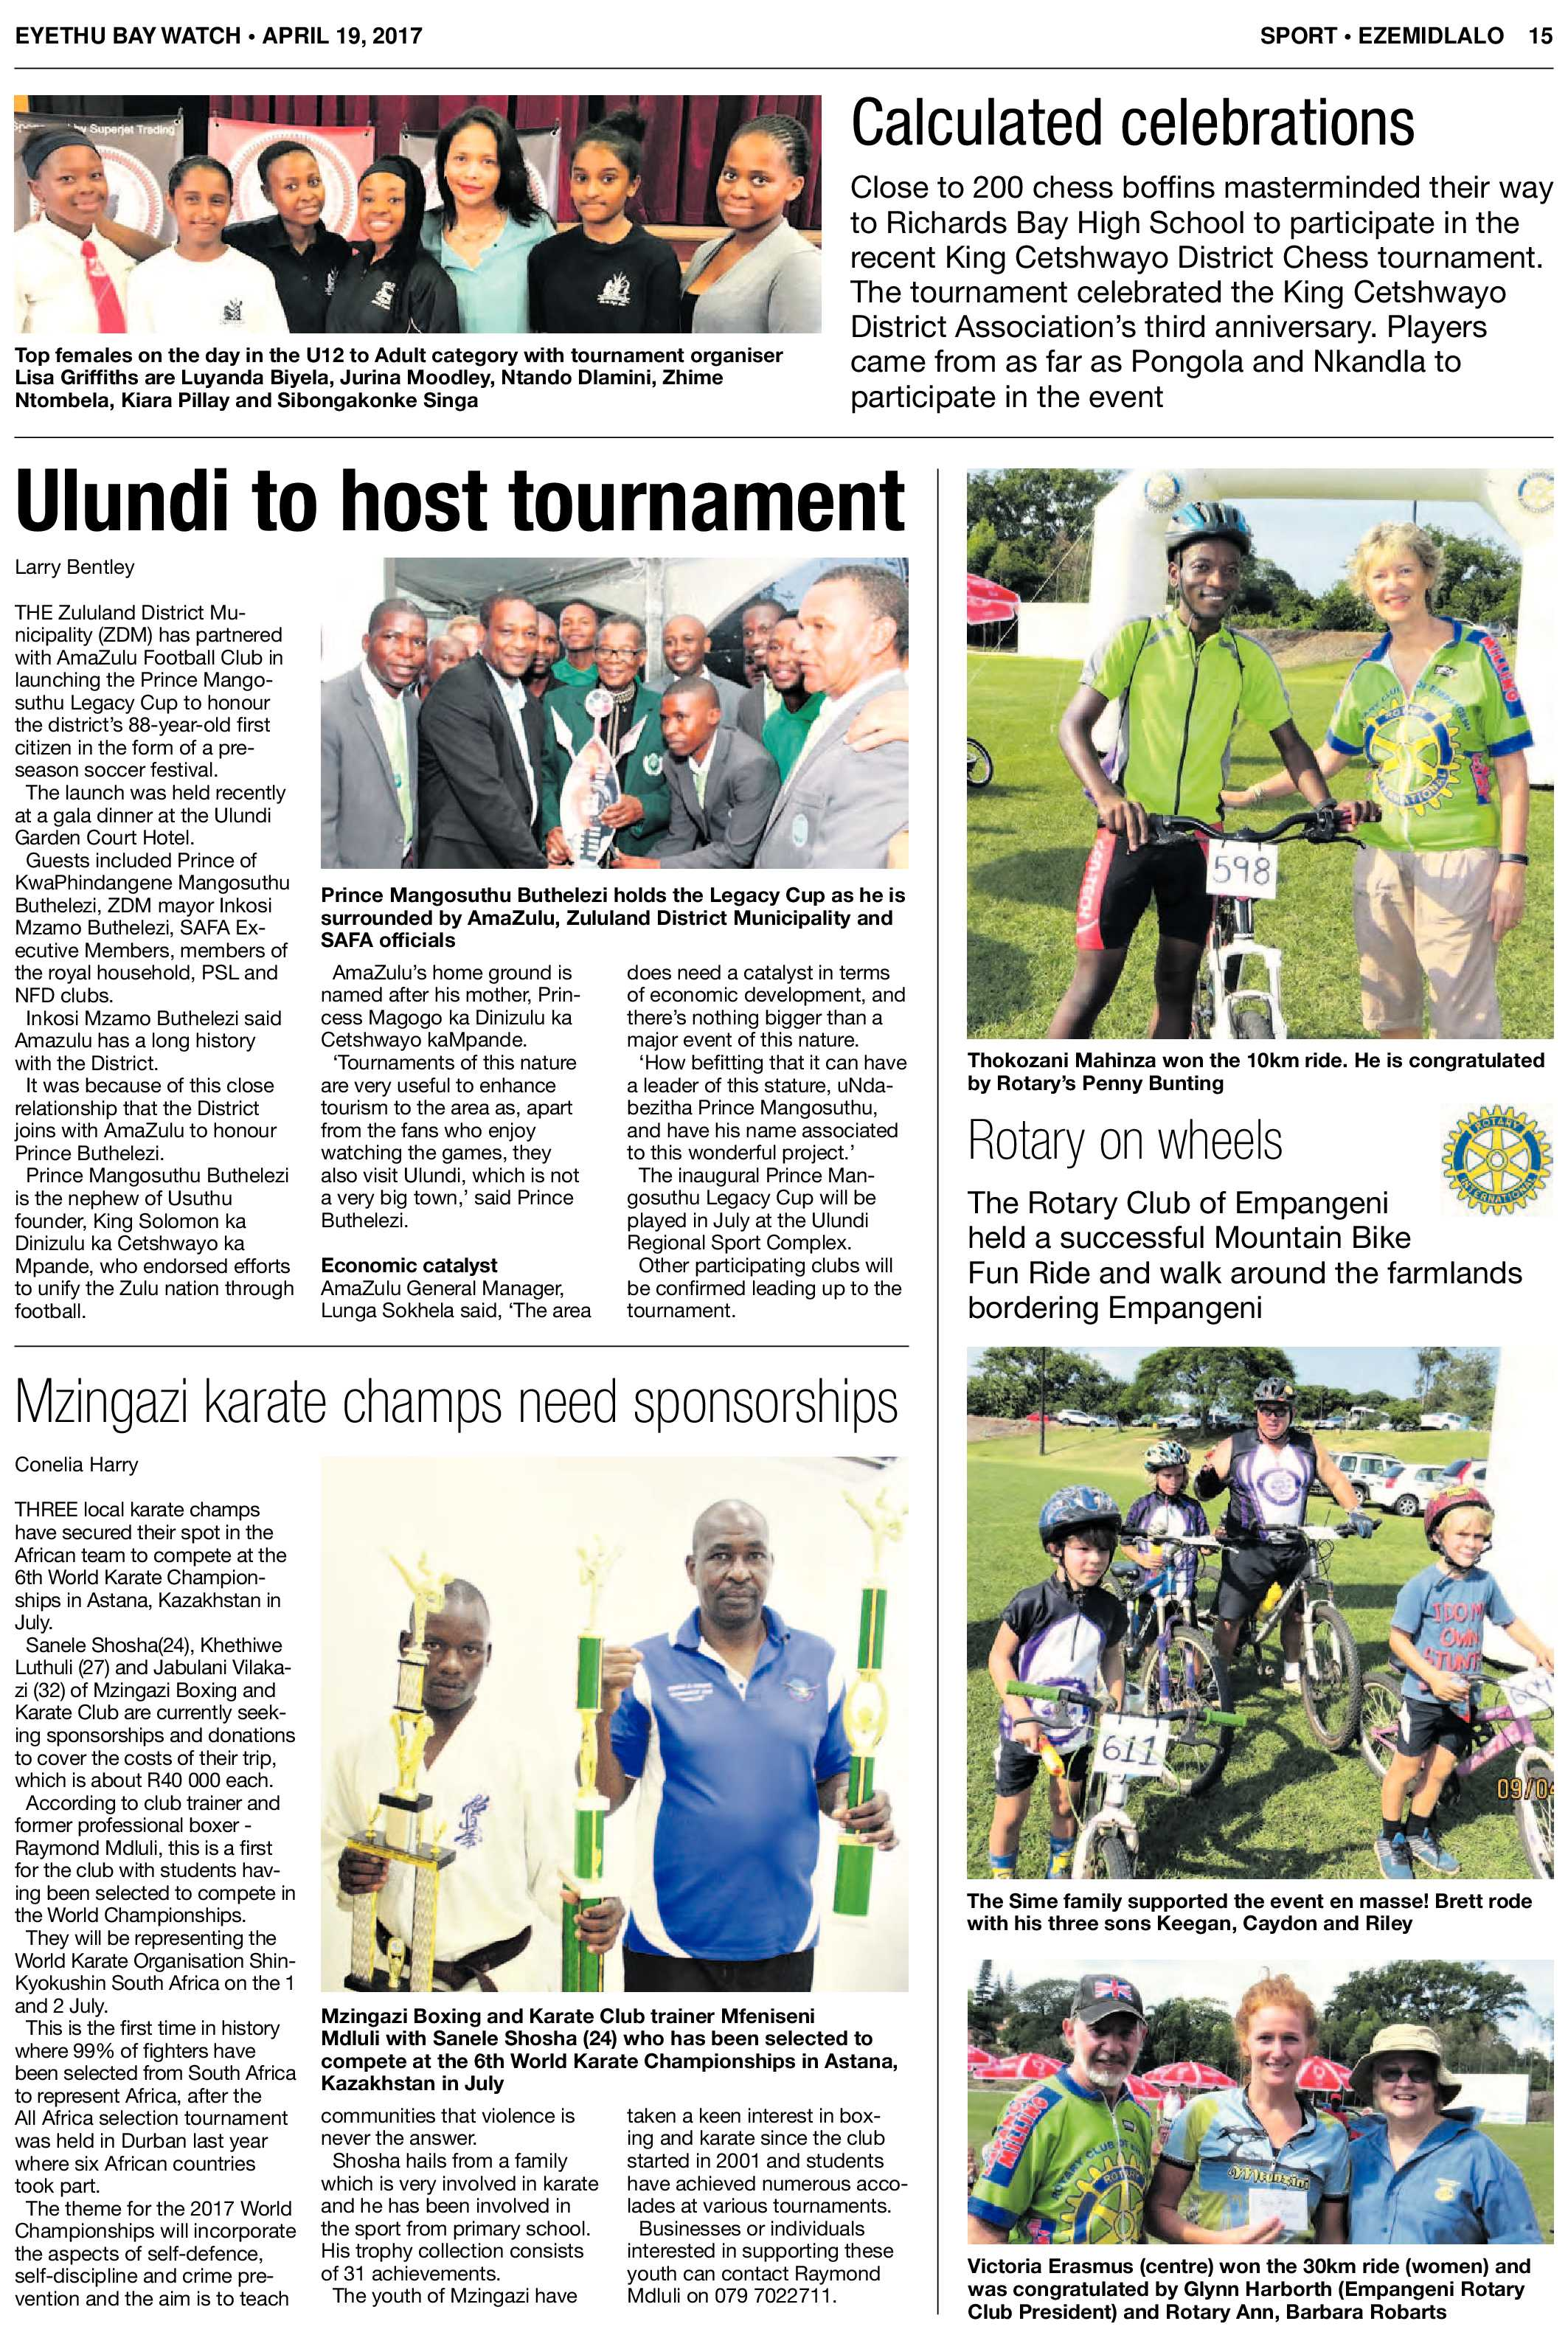 eyethu-baywatch-19-april-epapers-page-15